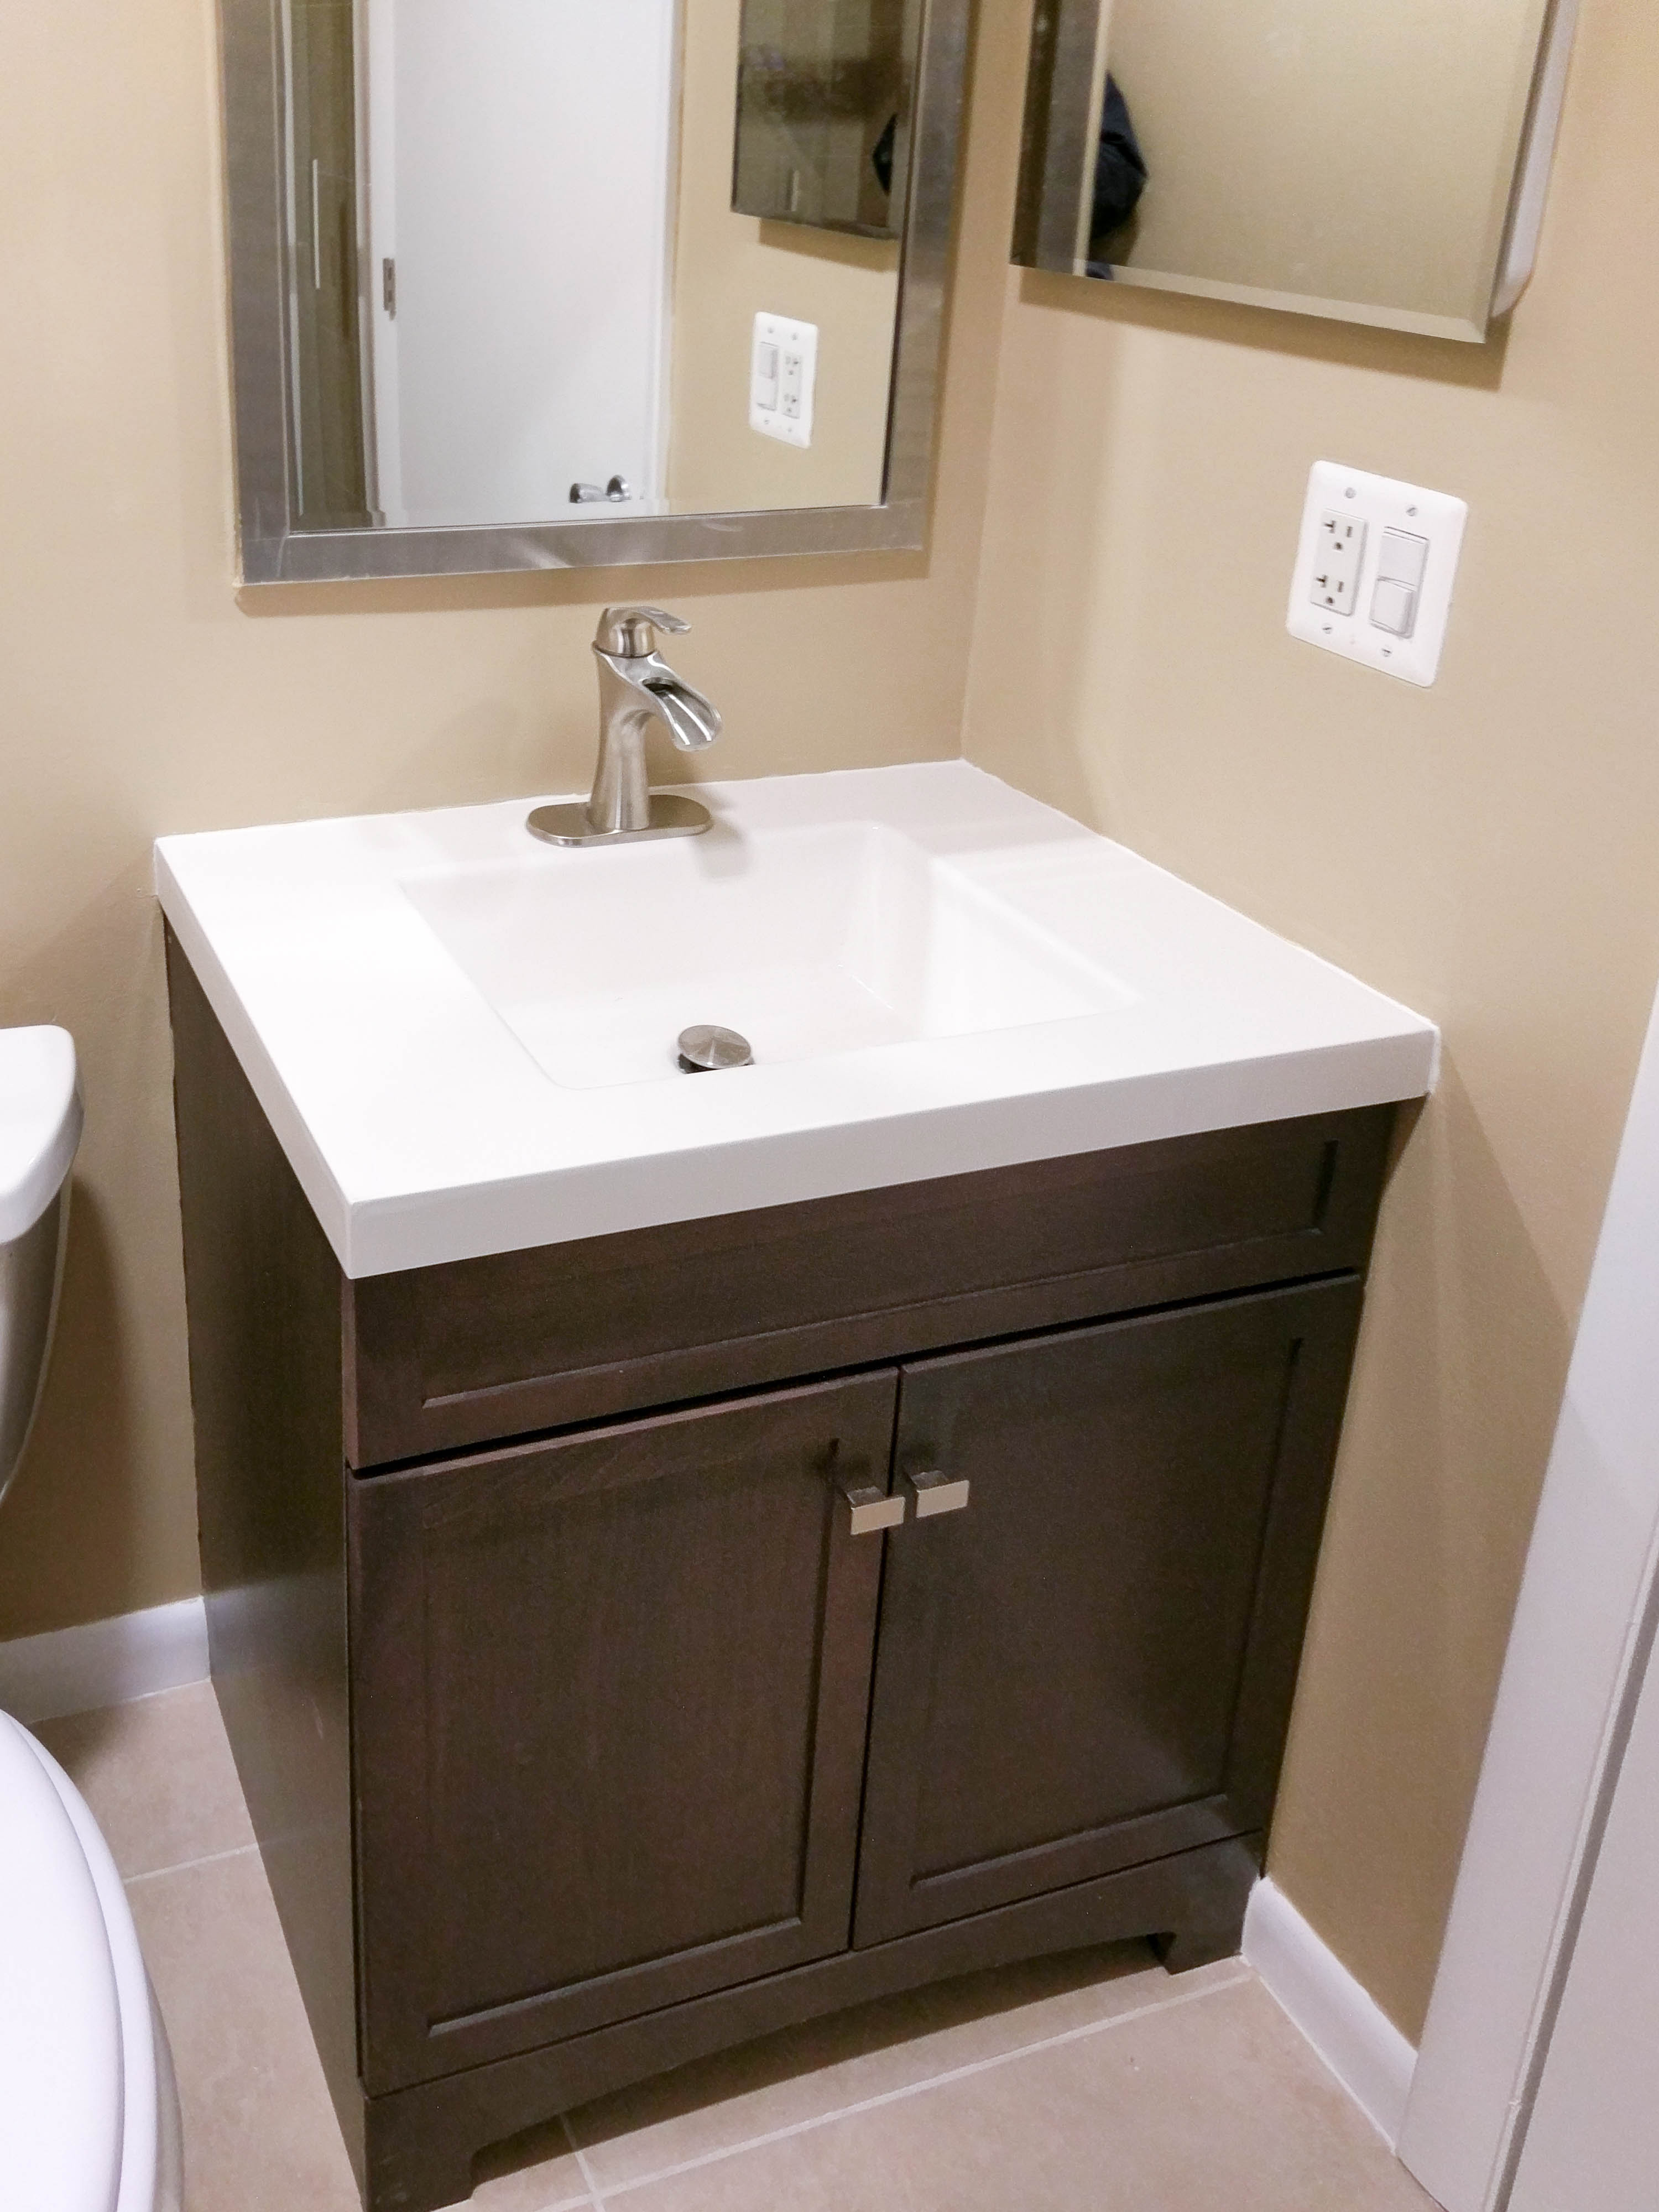 reston va expert in kitchen and bathroom remodeling